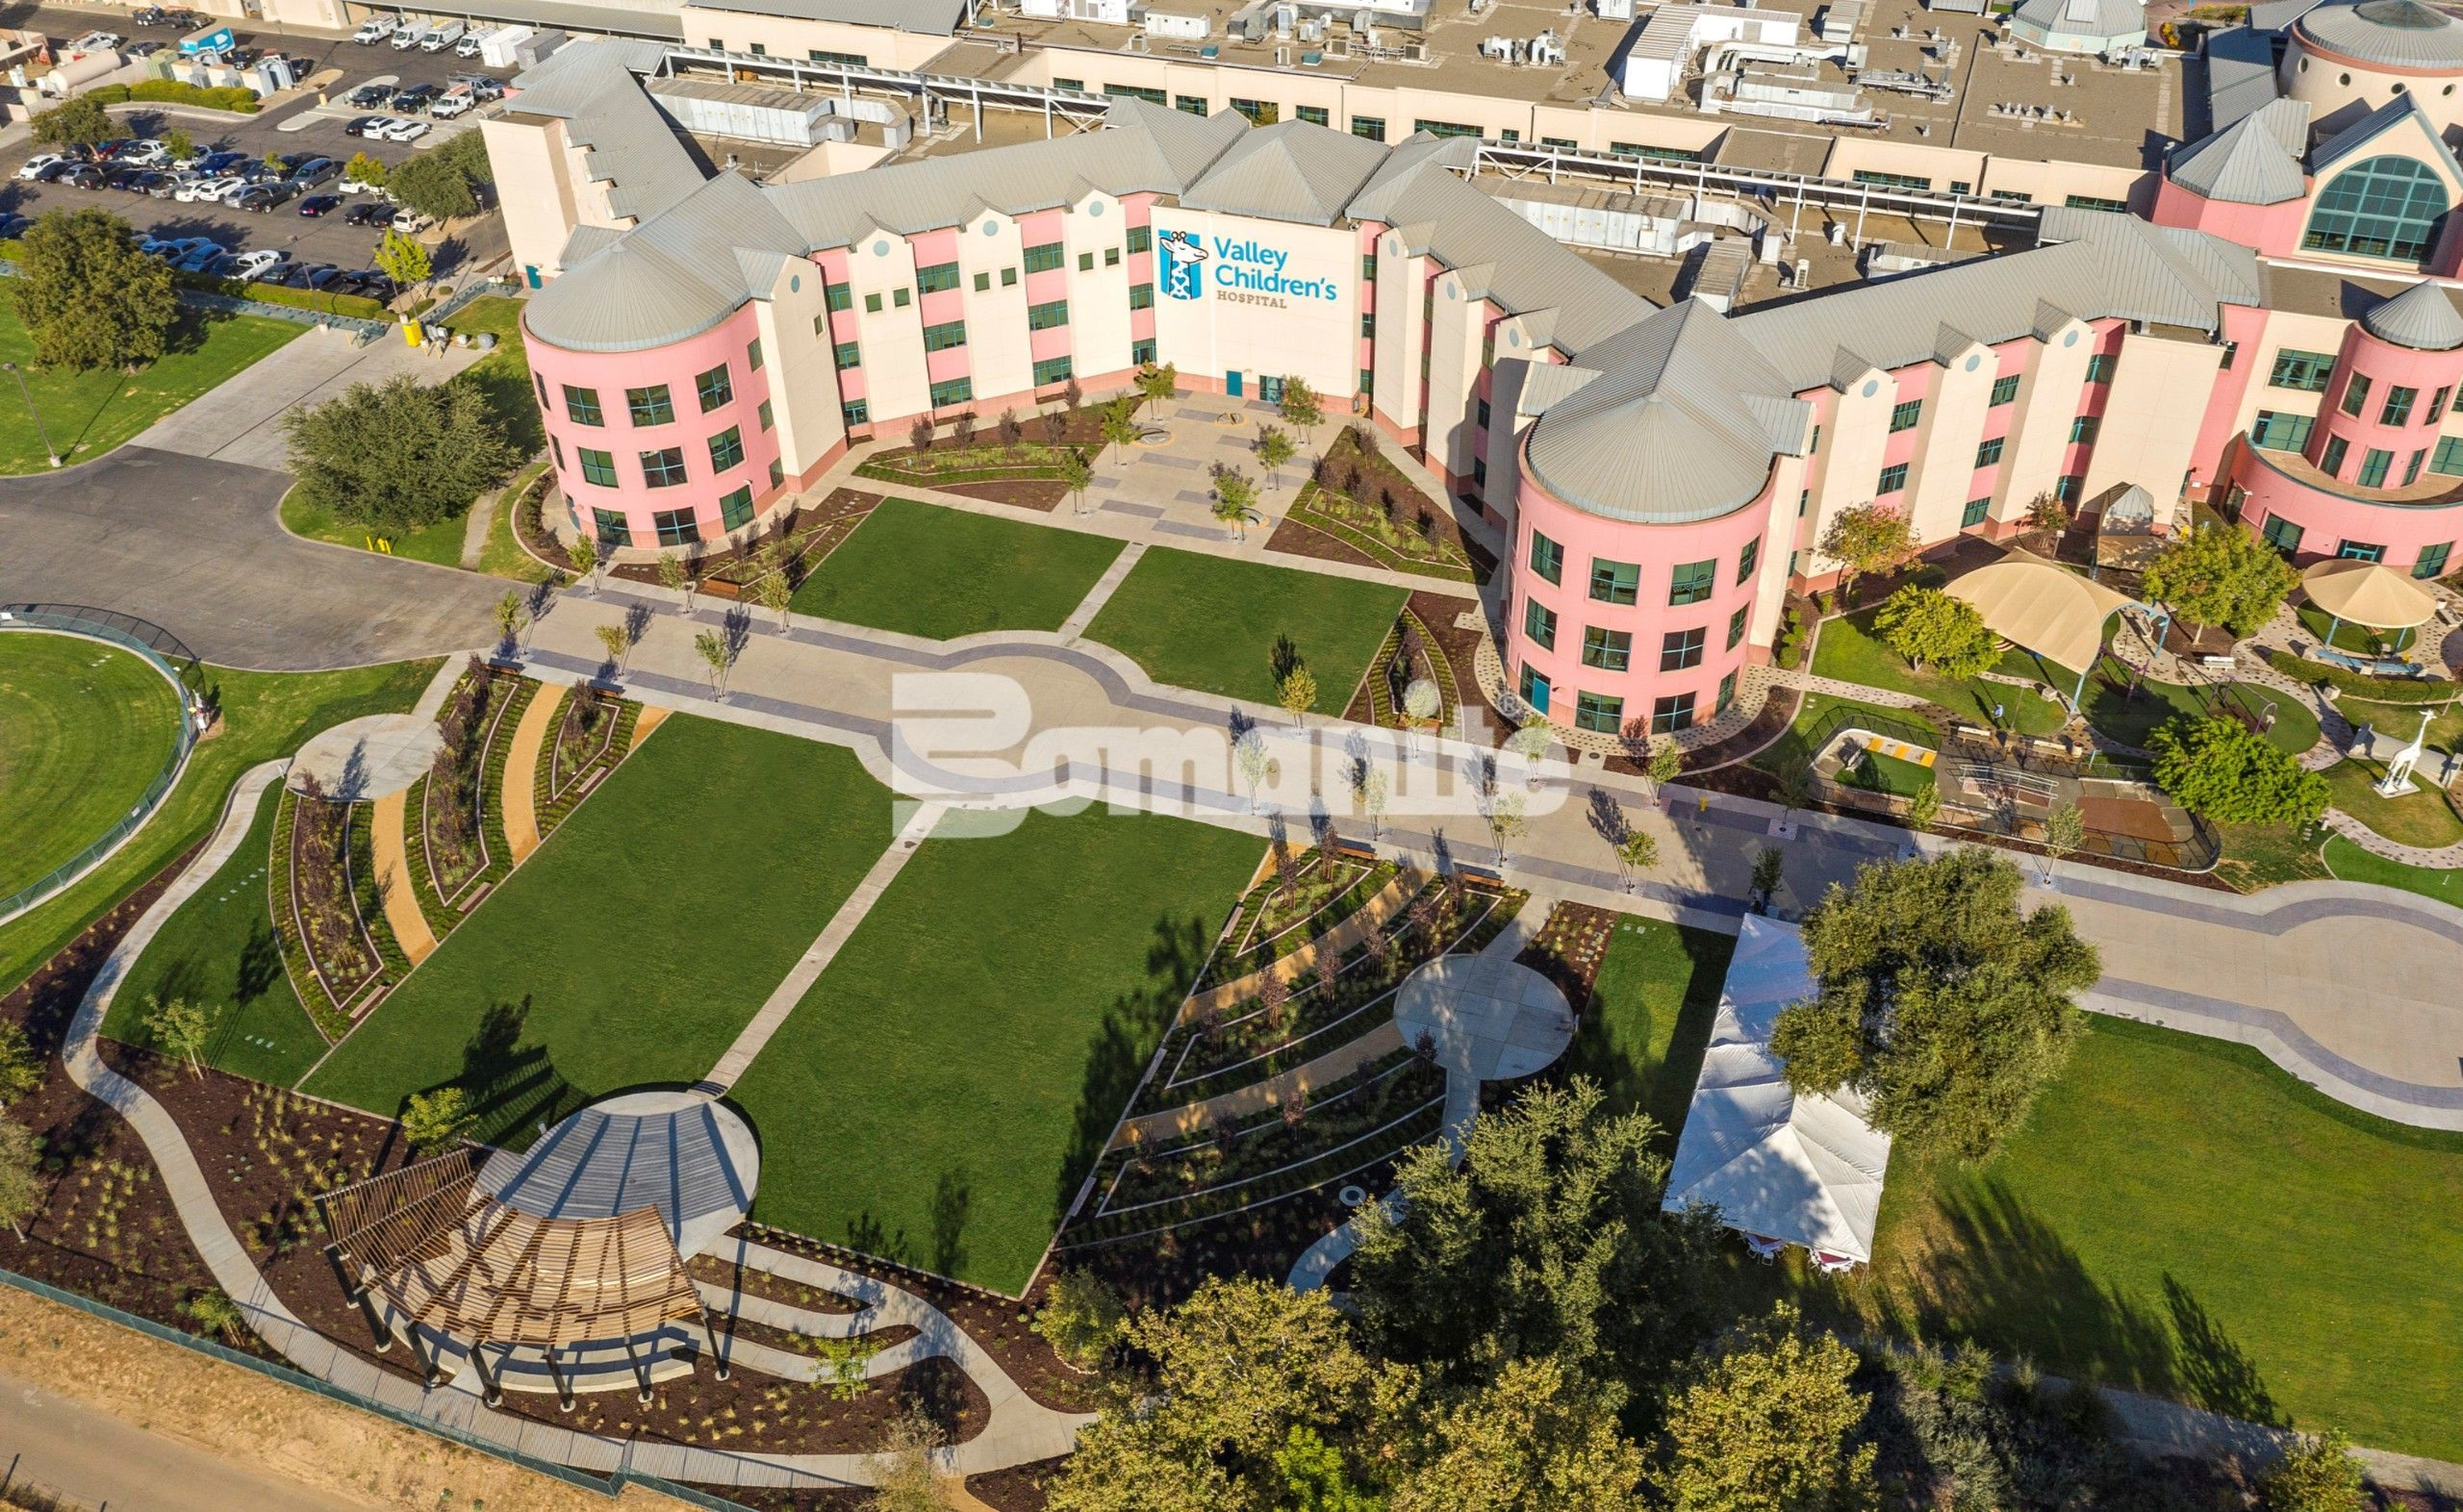 Aerial overhead view of Valley Children's Hospital Grounds where Valley Children's Healthcare Network implements their Landscaping Master Plan Phase 2 with Bomanite Decorative Exposed Aggregate Revealed and Sandscape Texture Systems installed by Heritage Bomanite located in Fresno, CA creating an artistic yet functional design for fundraising events and vehicle traffic.